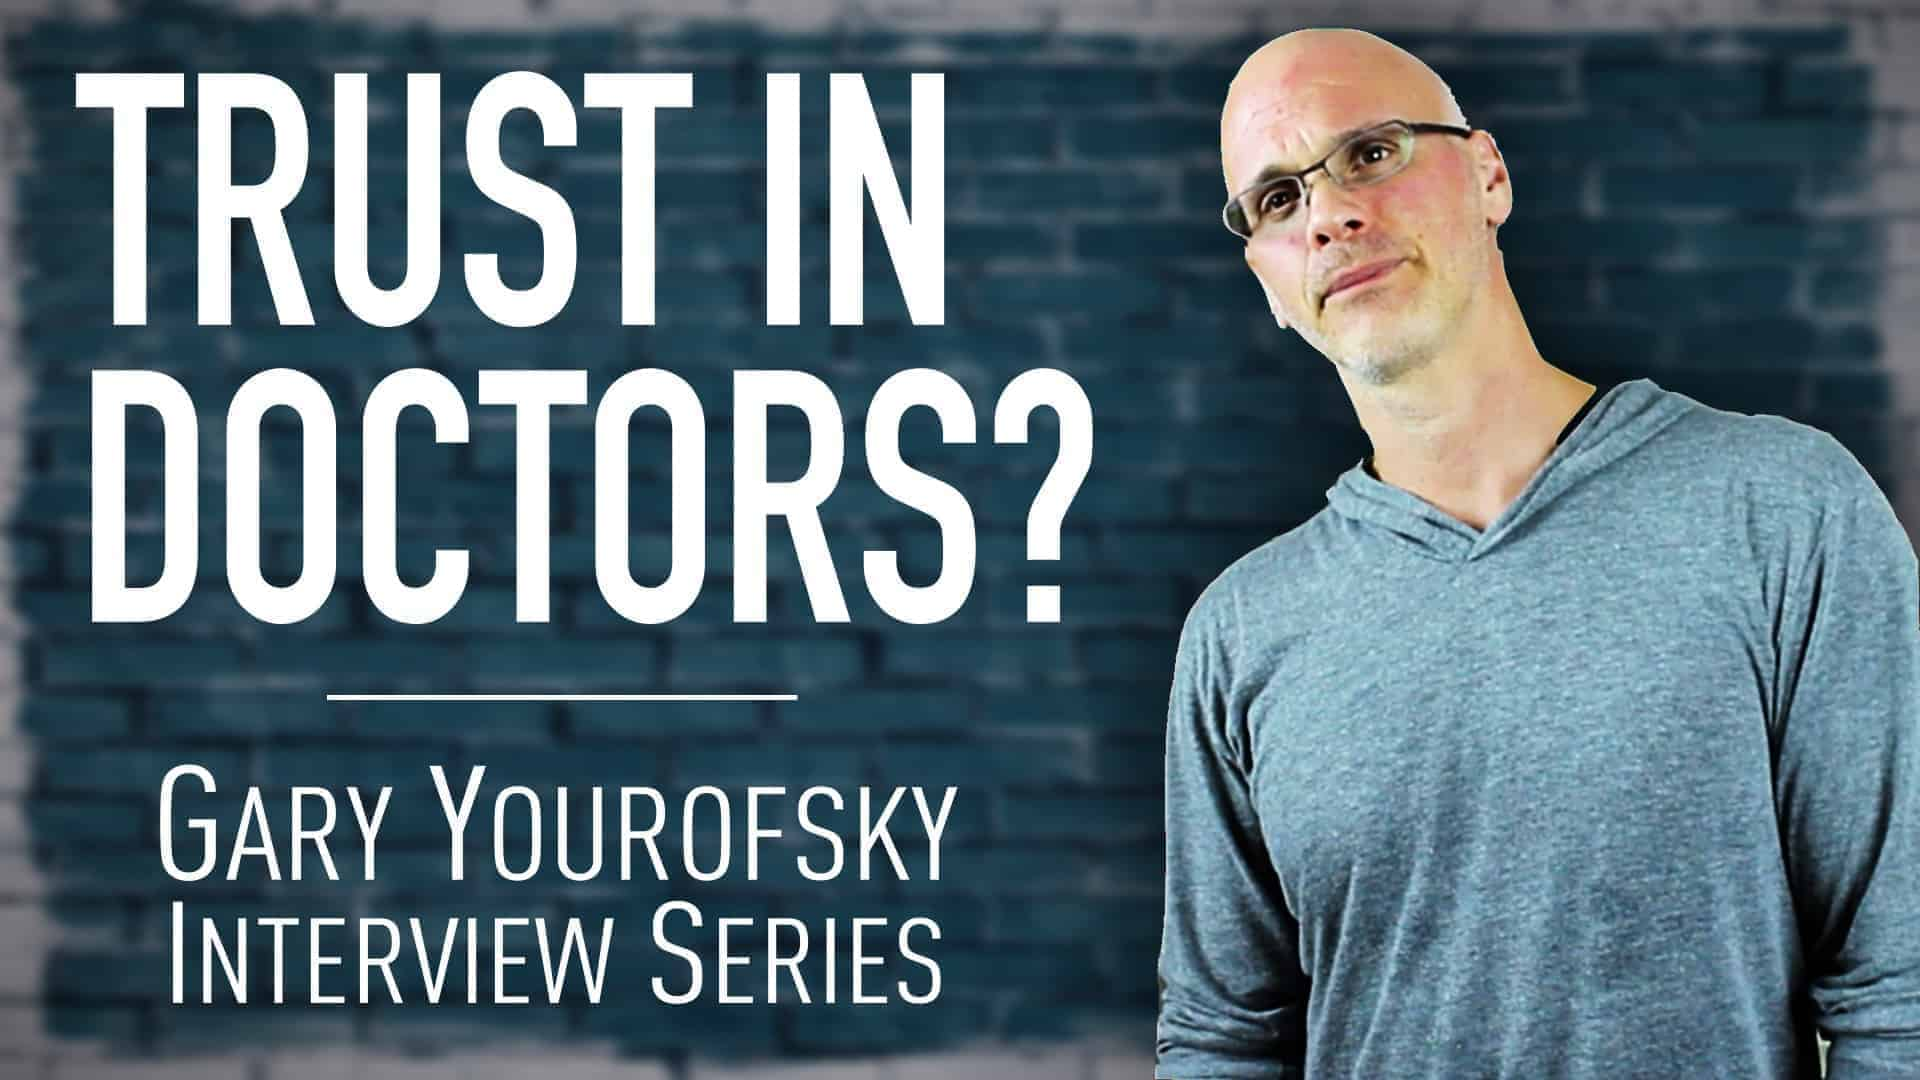 """Author and vegan activist Gary Yourofsky is shown along side the words """"Trust in doctors - Gary Yourofsky interview series"""""""